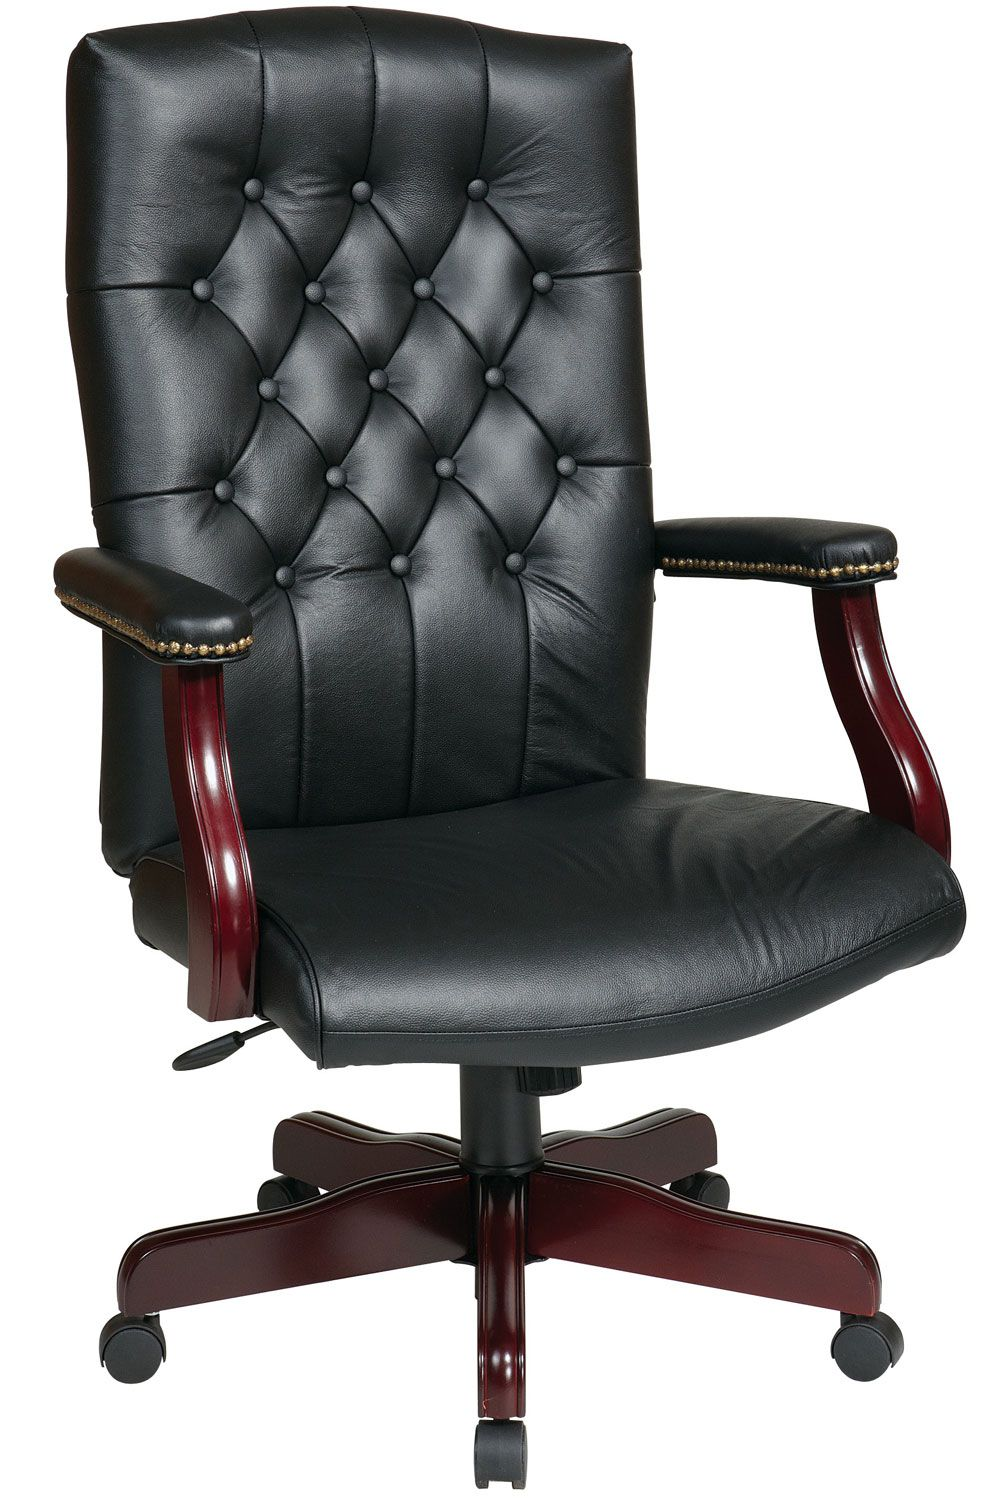 traditional leather office chair TEX232L-3 Office Star - Traditional Black Leather Executive Office Chair | Leather Office Chairs